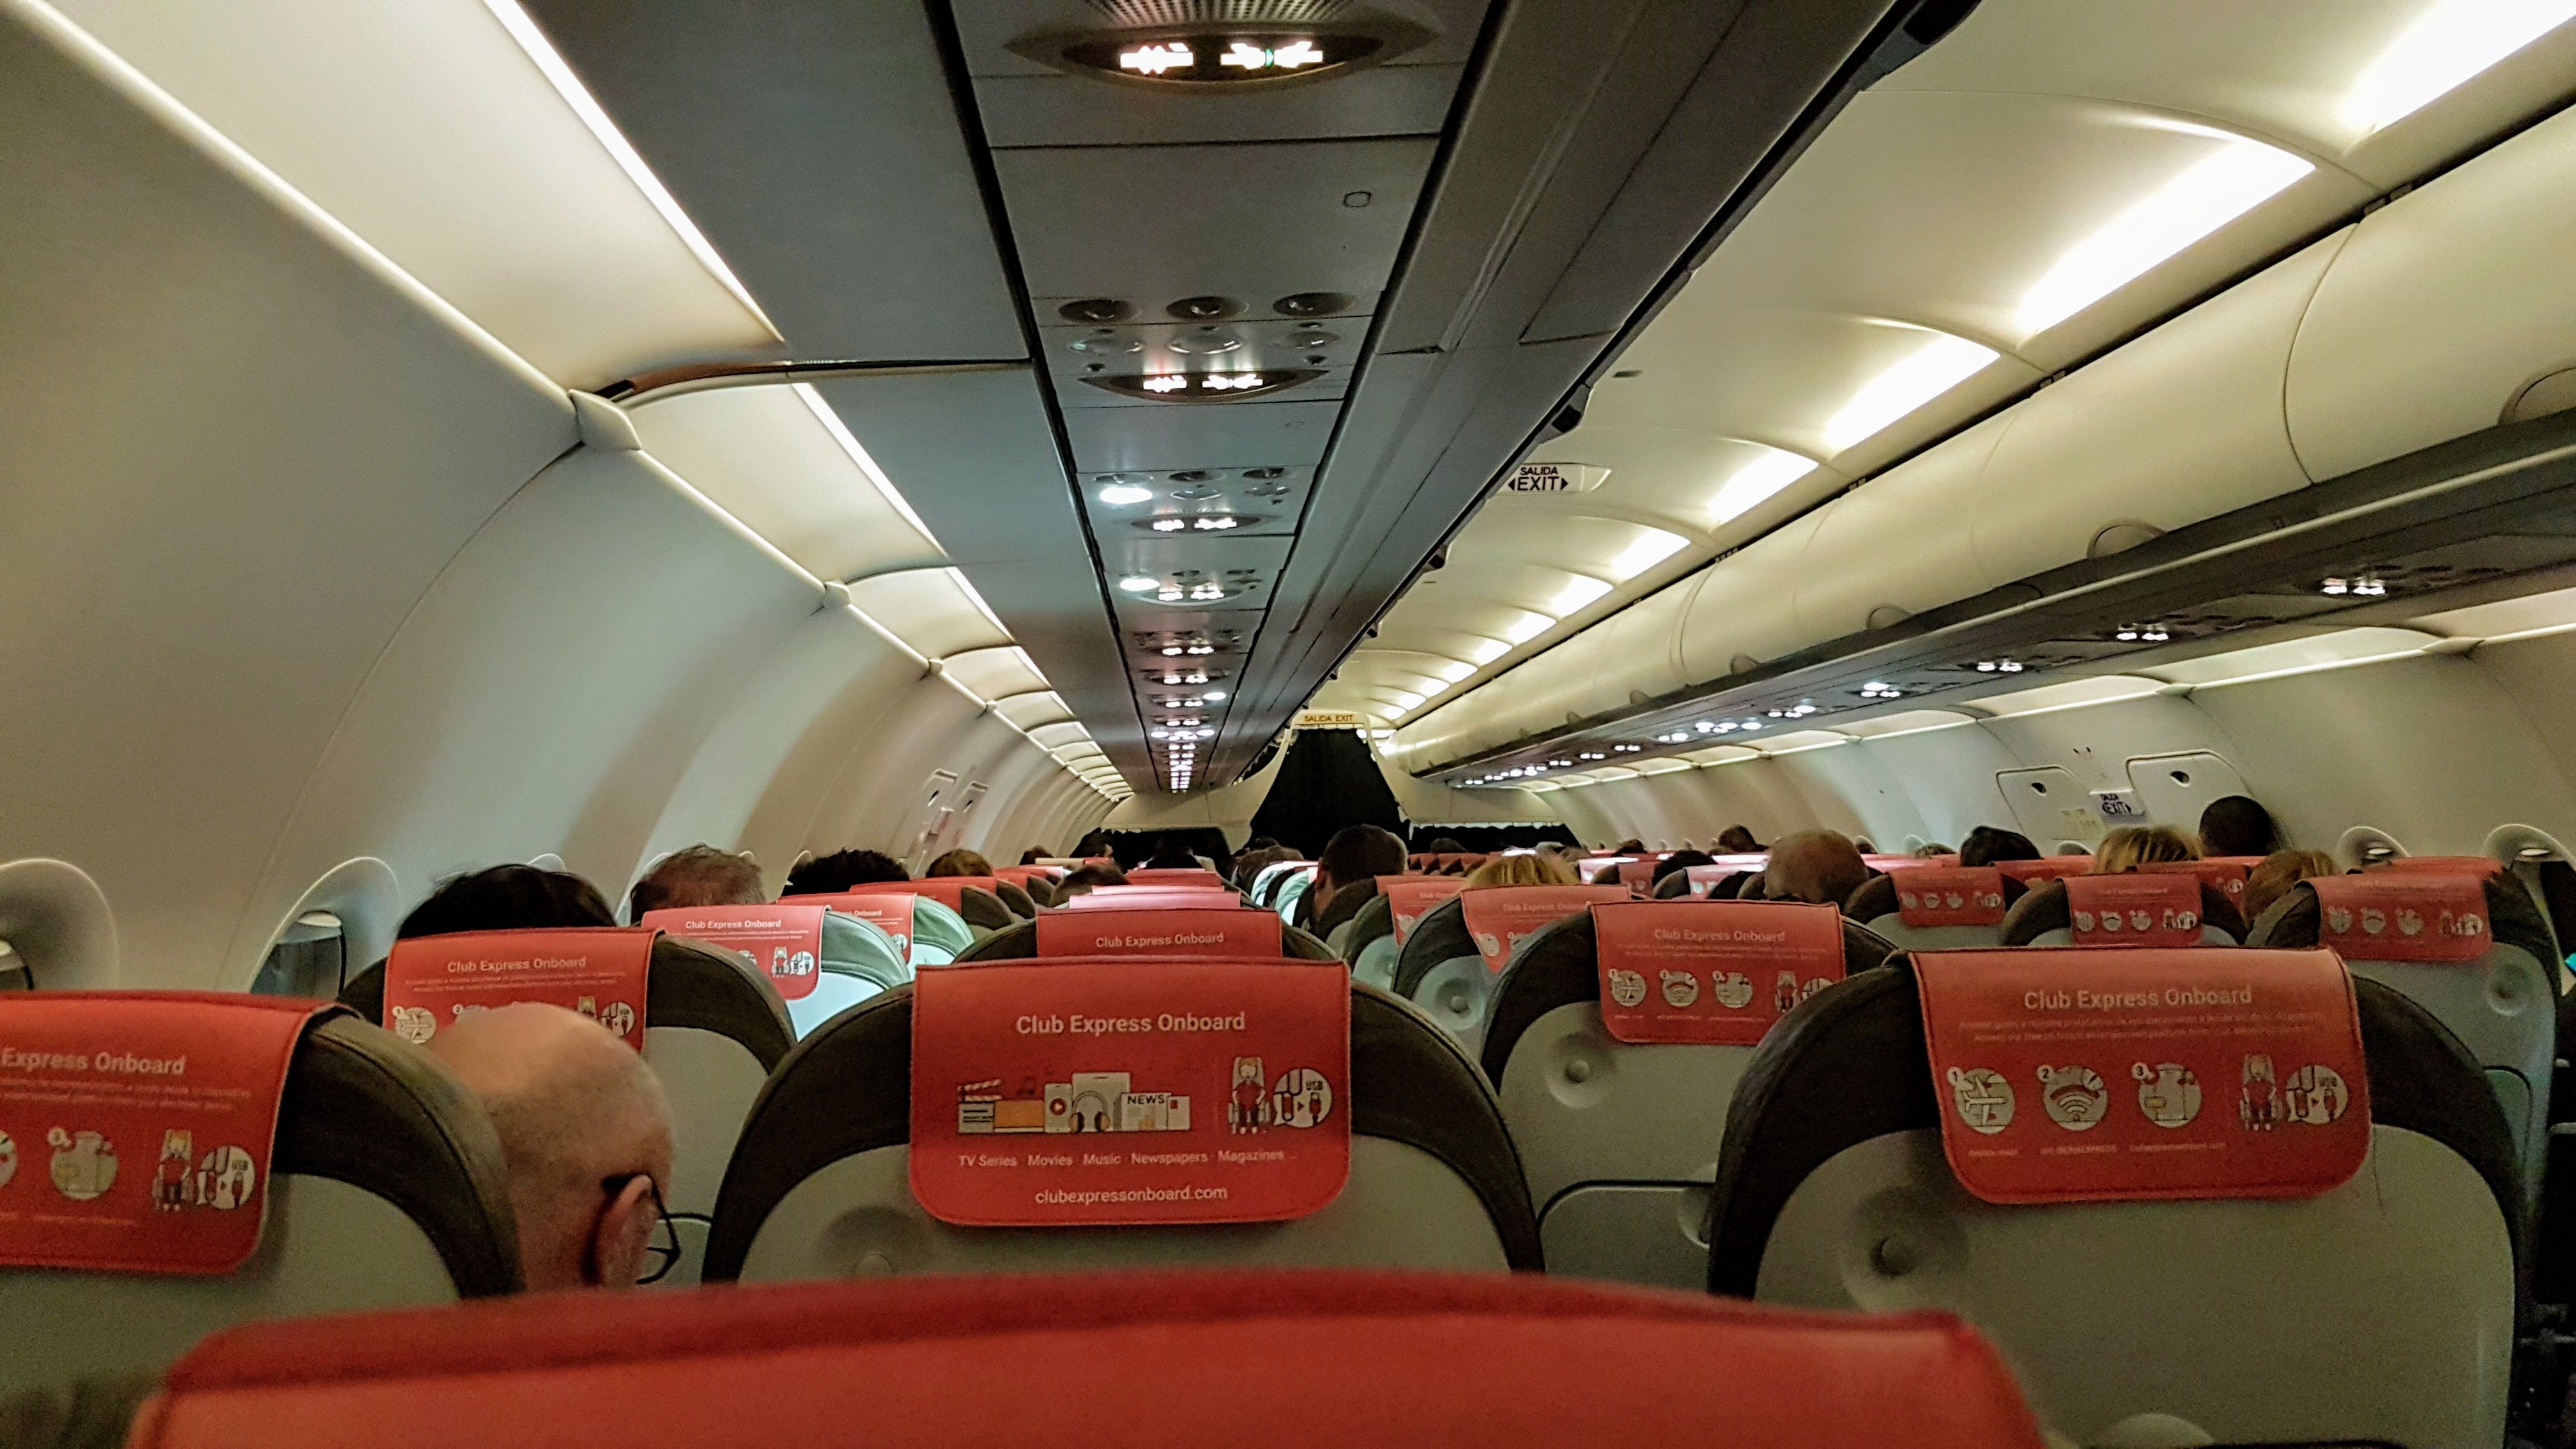 Interior of Airplane with Passengers